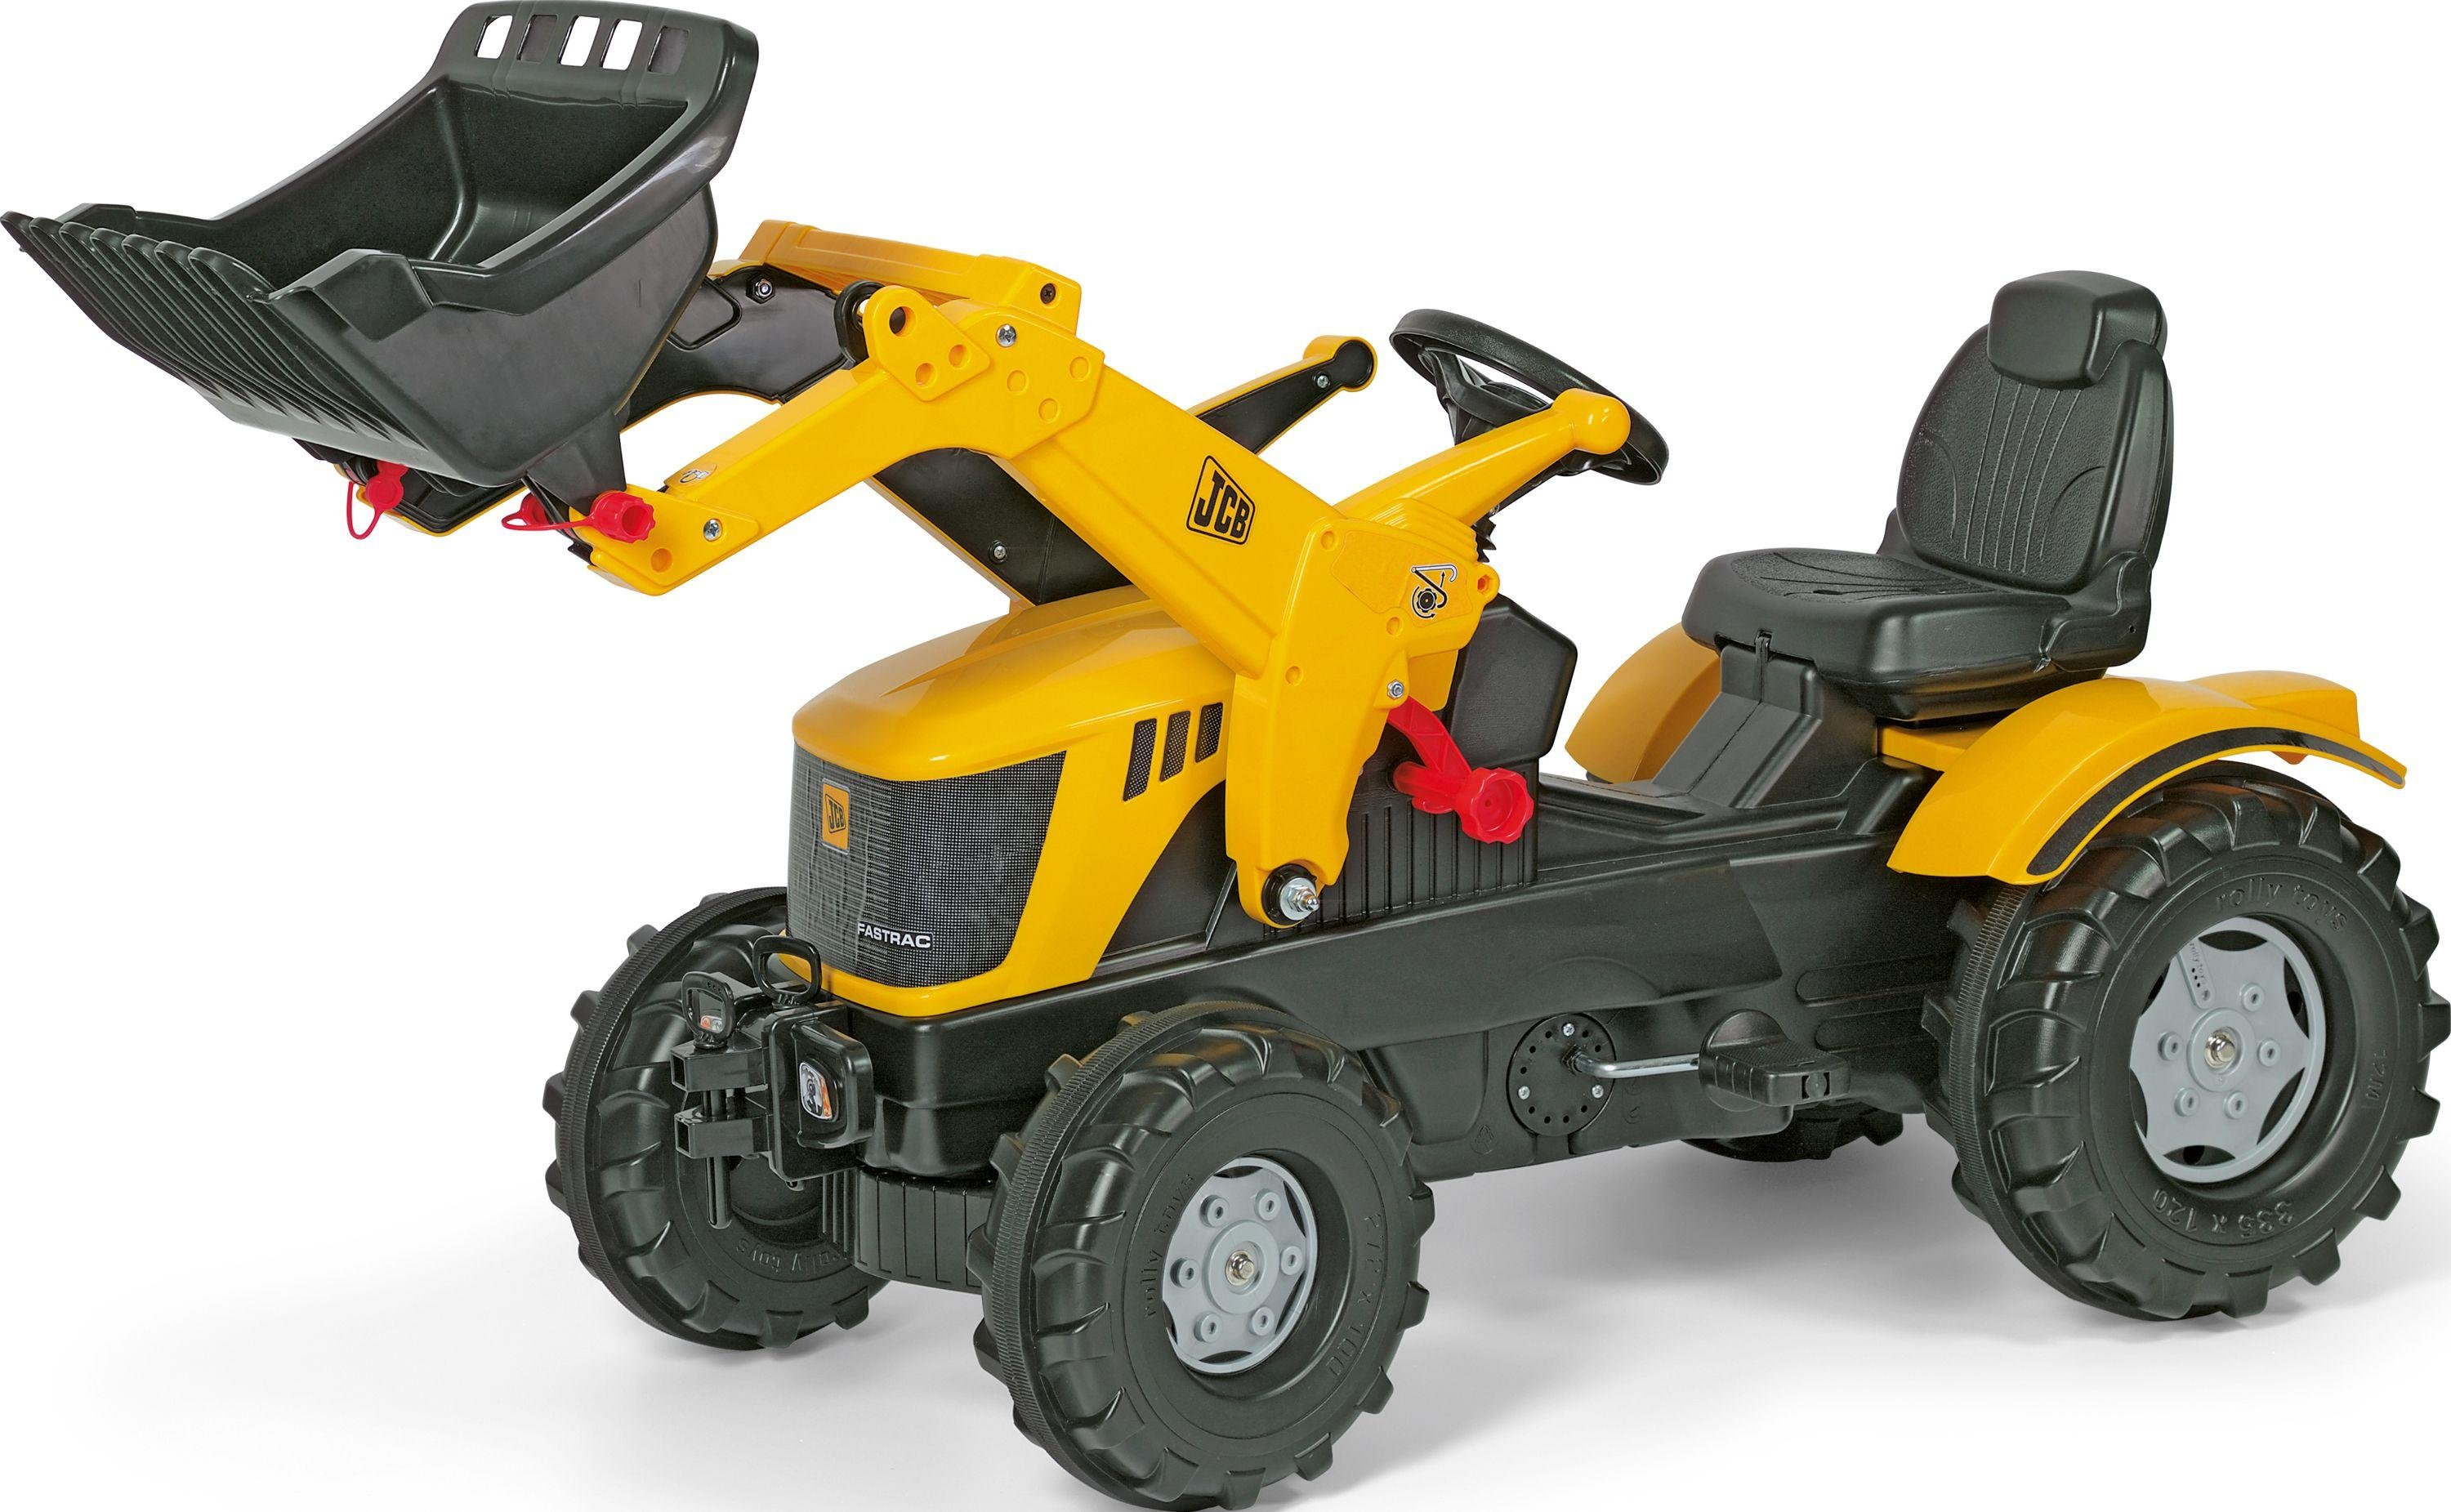 jcb-8250-v-tronic-child-tractor-with-front-loader